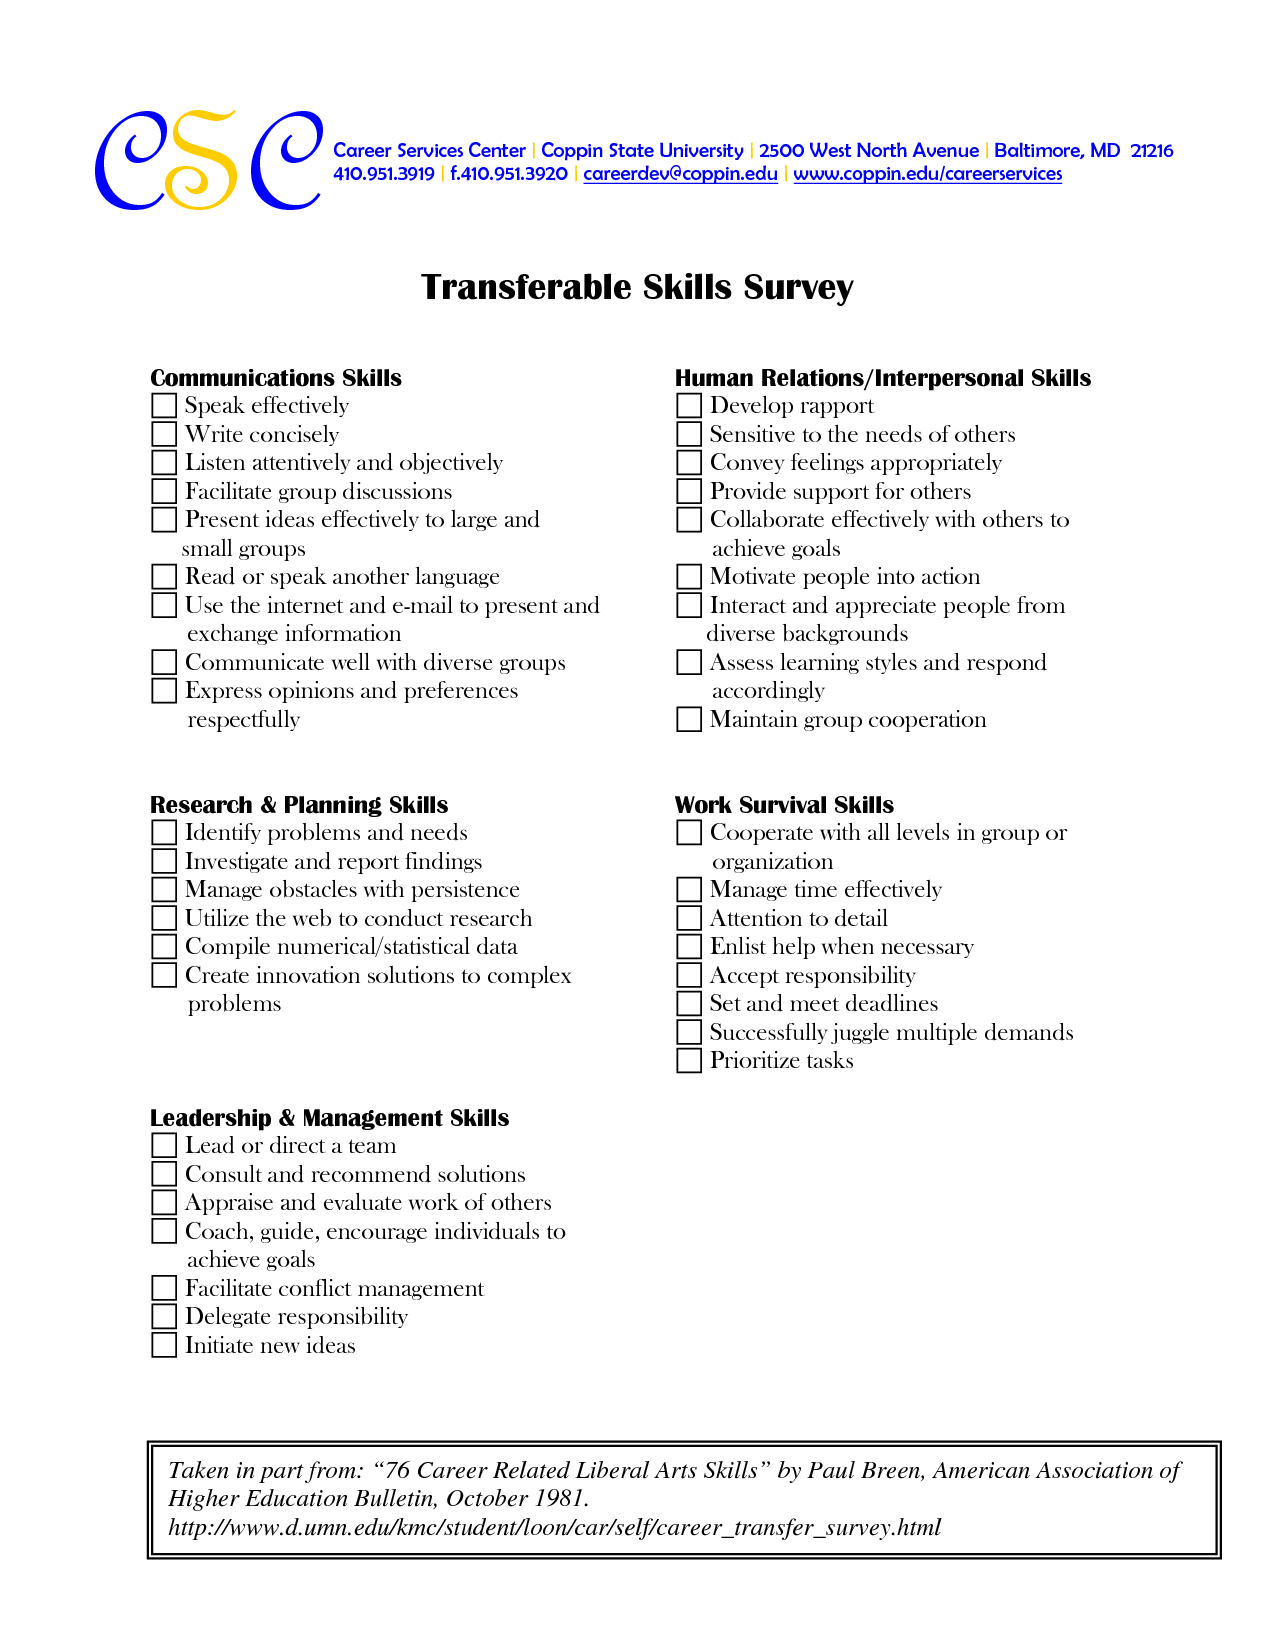 Worksheets Transferable Skills Worksheet Cheatslist Free Worksheets For Kids Amp Printable